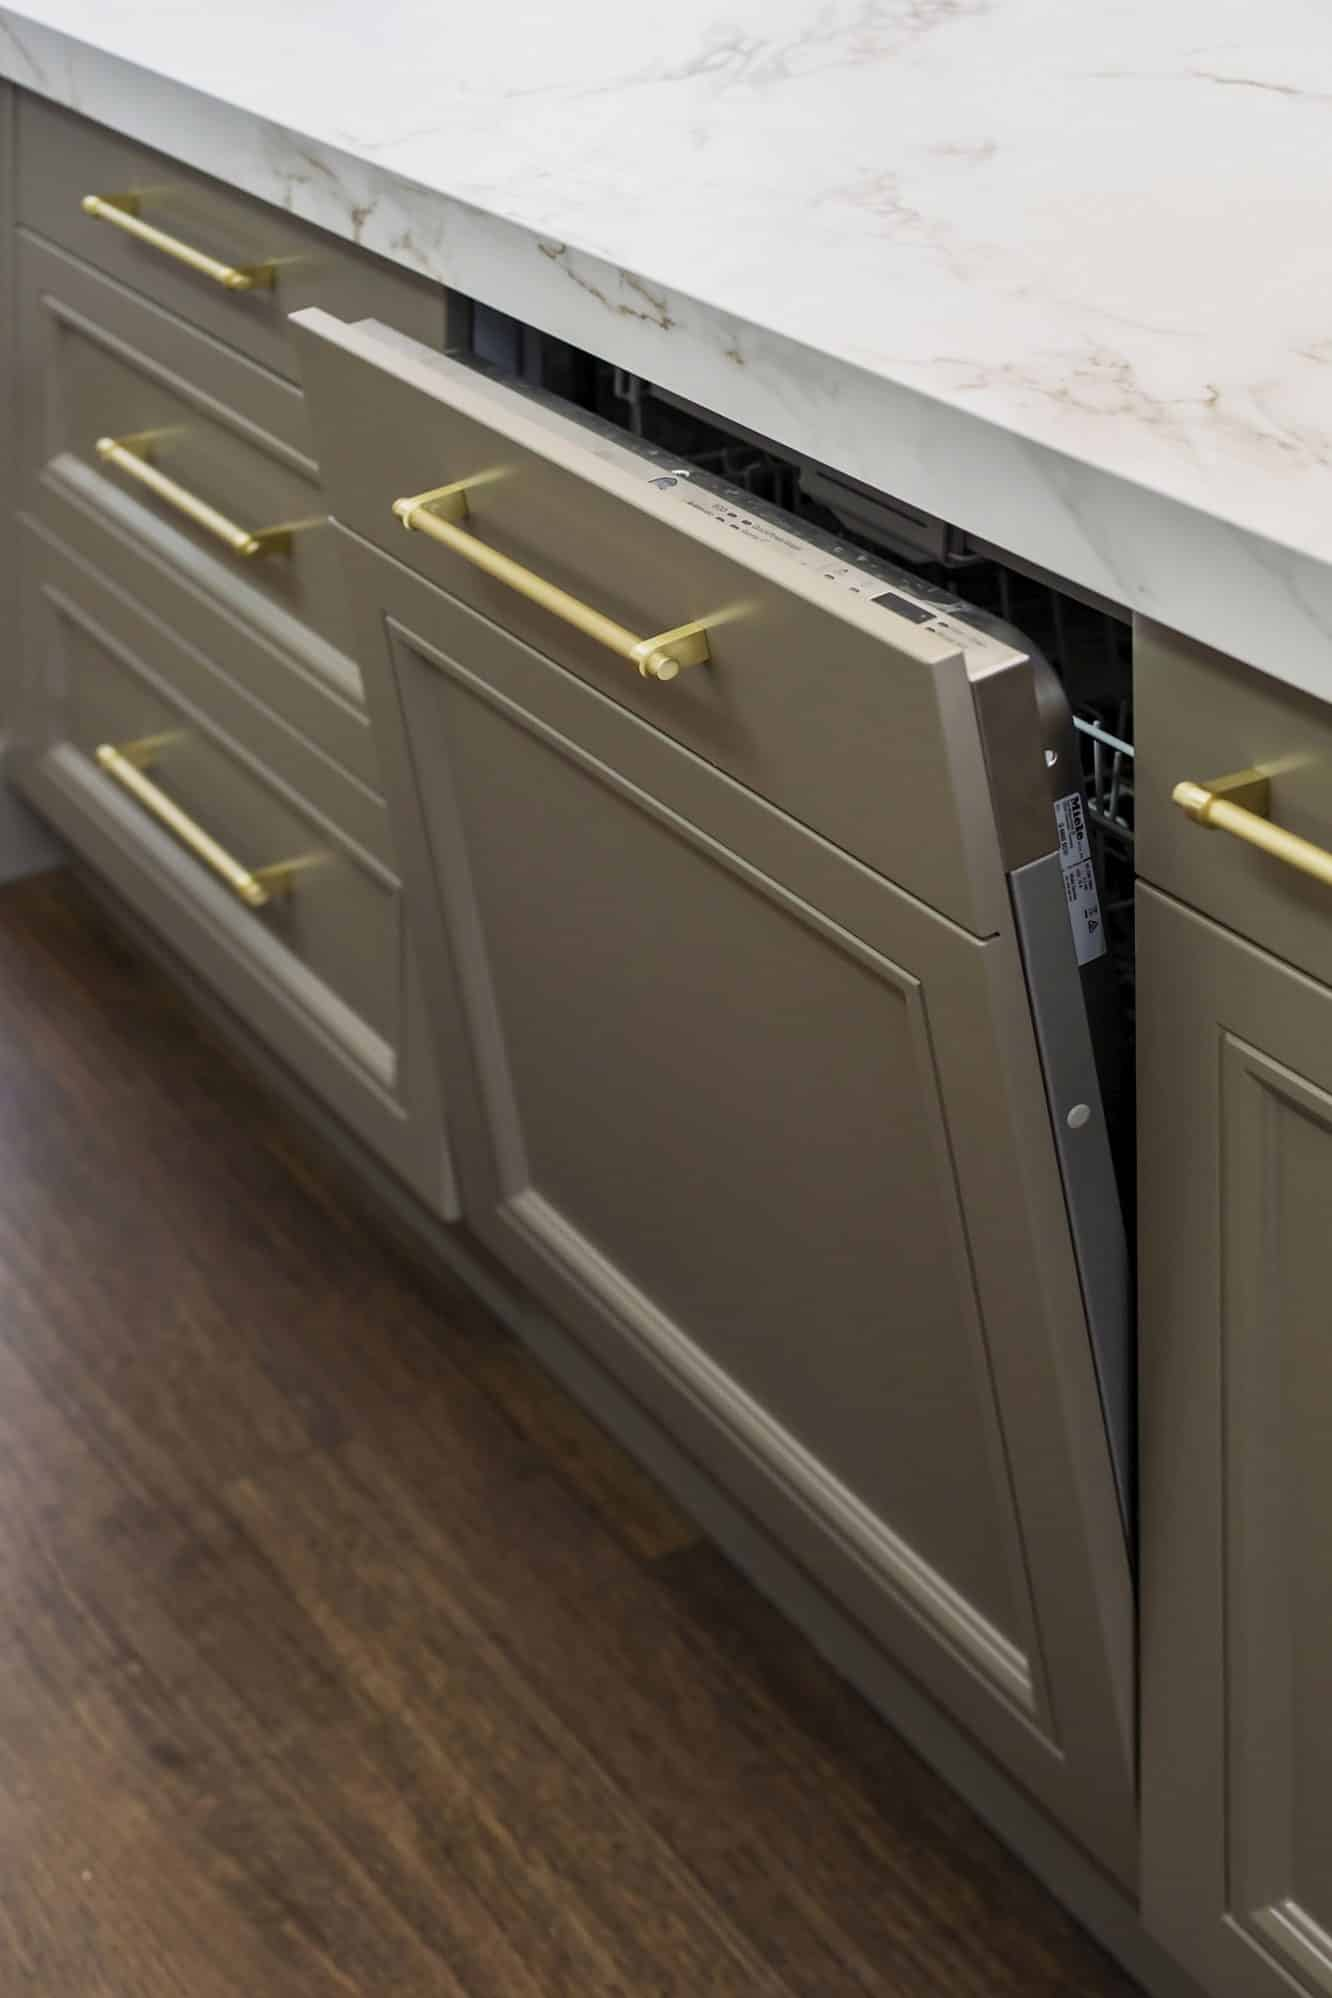 Integrated Miele dishwasher hidden behind a detailed kitchen door